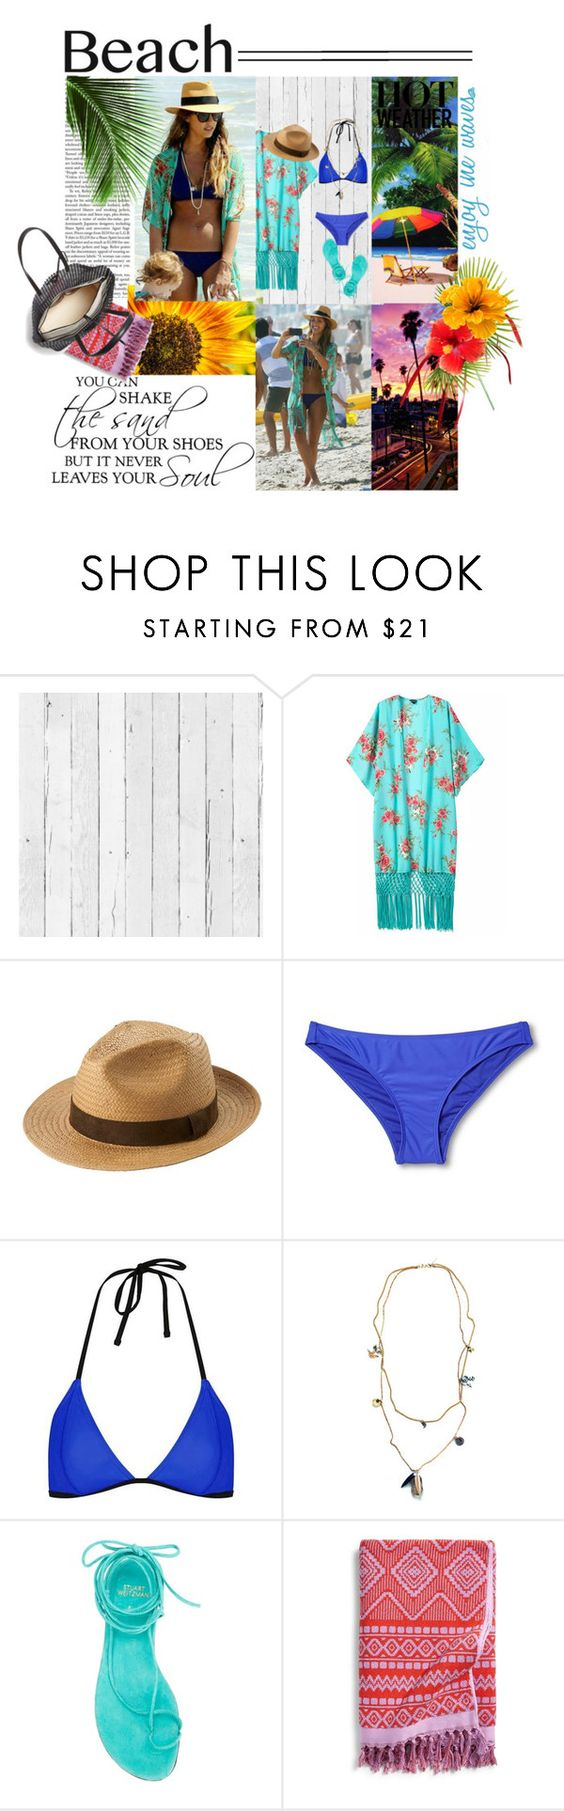 """""""Hello Summer"""" by sanamisbah ❤ liked on Polyvore featuring NLXL, Chicnova Fashion, Uniqlo, Topshop, Maiden-Art, Stuart Weitzman, Vera Bradley, Loeffler Randall and coverups"""